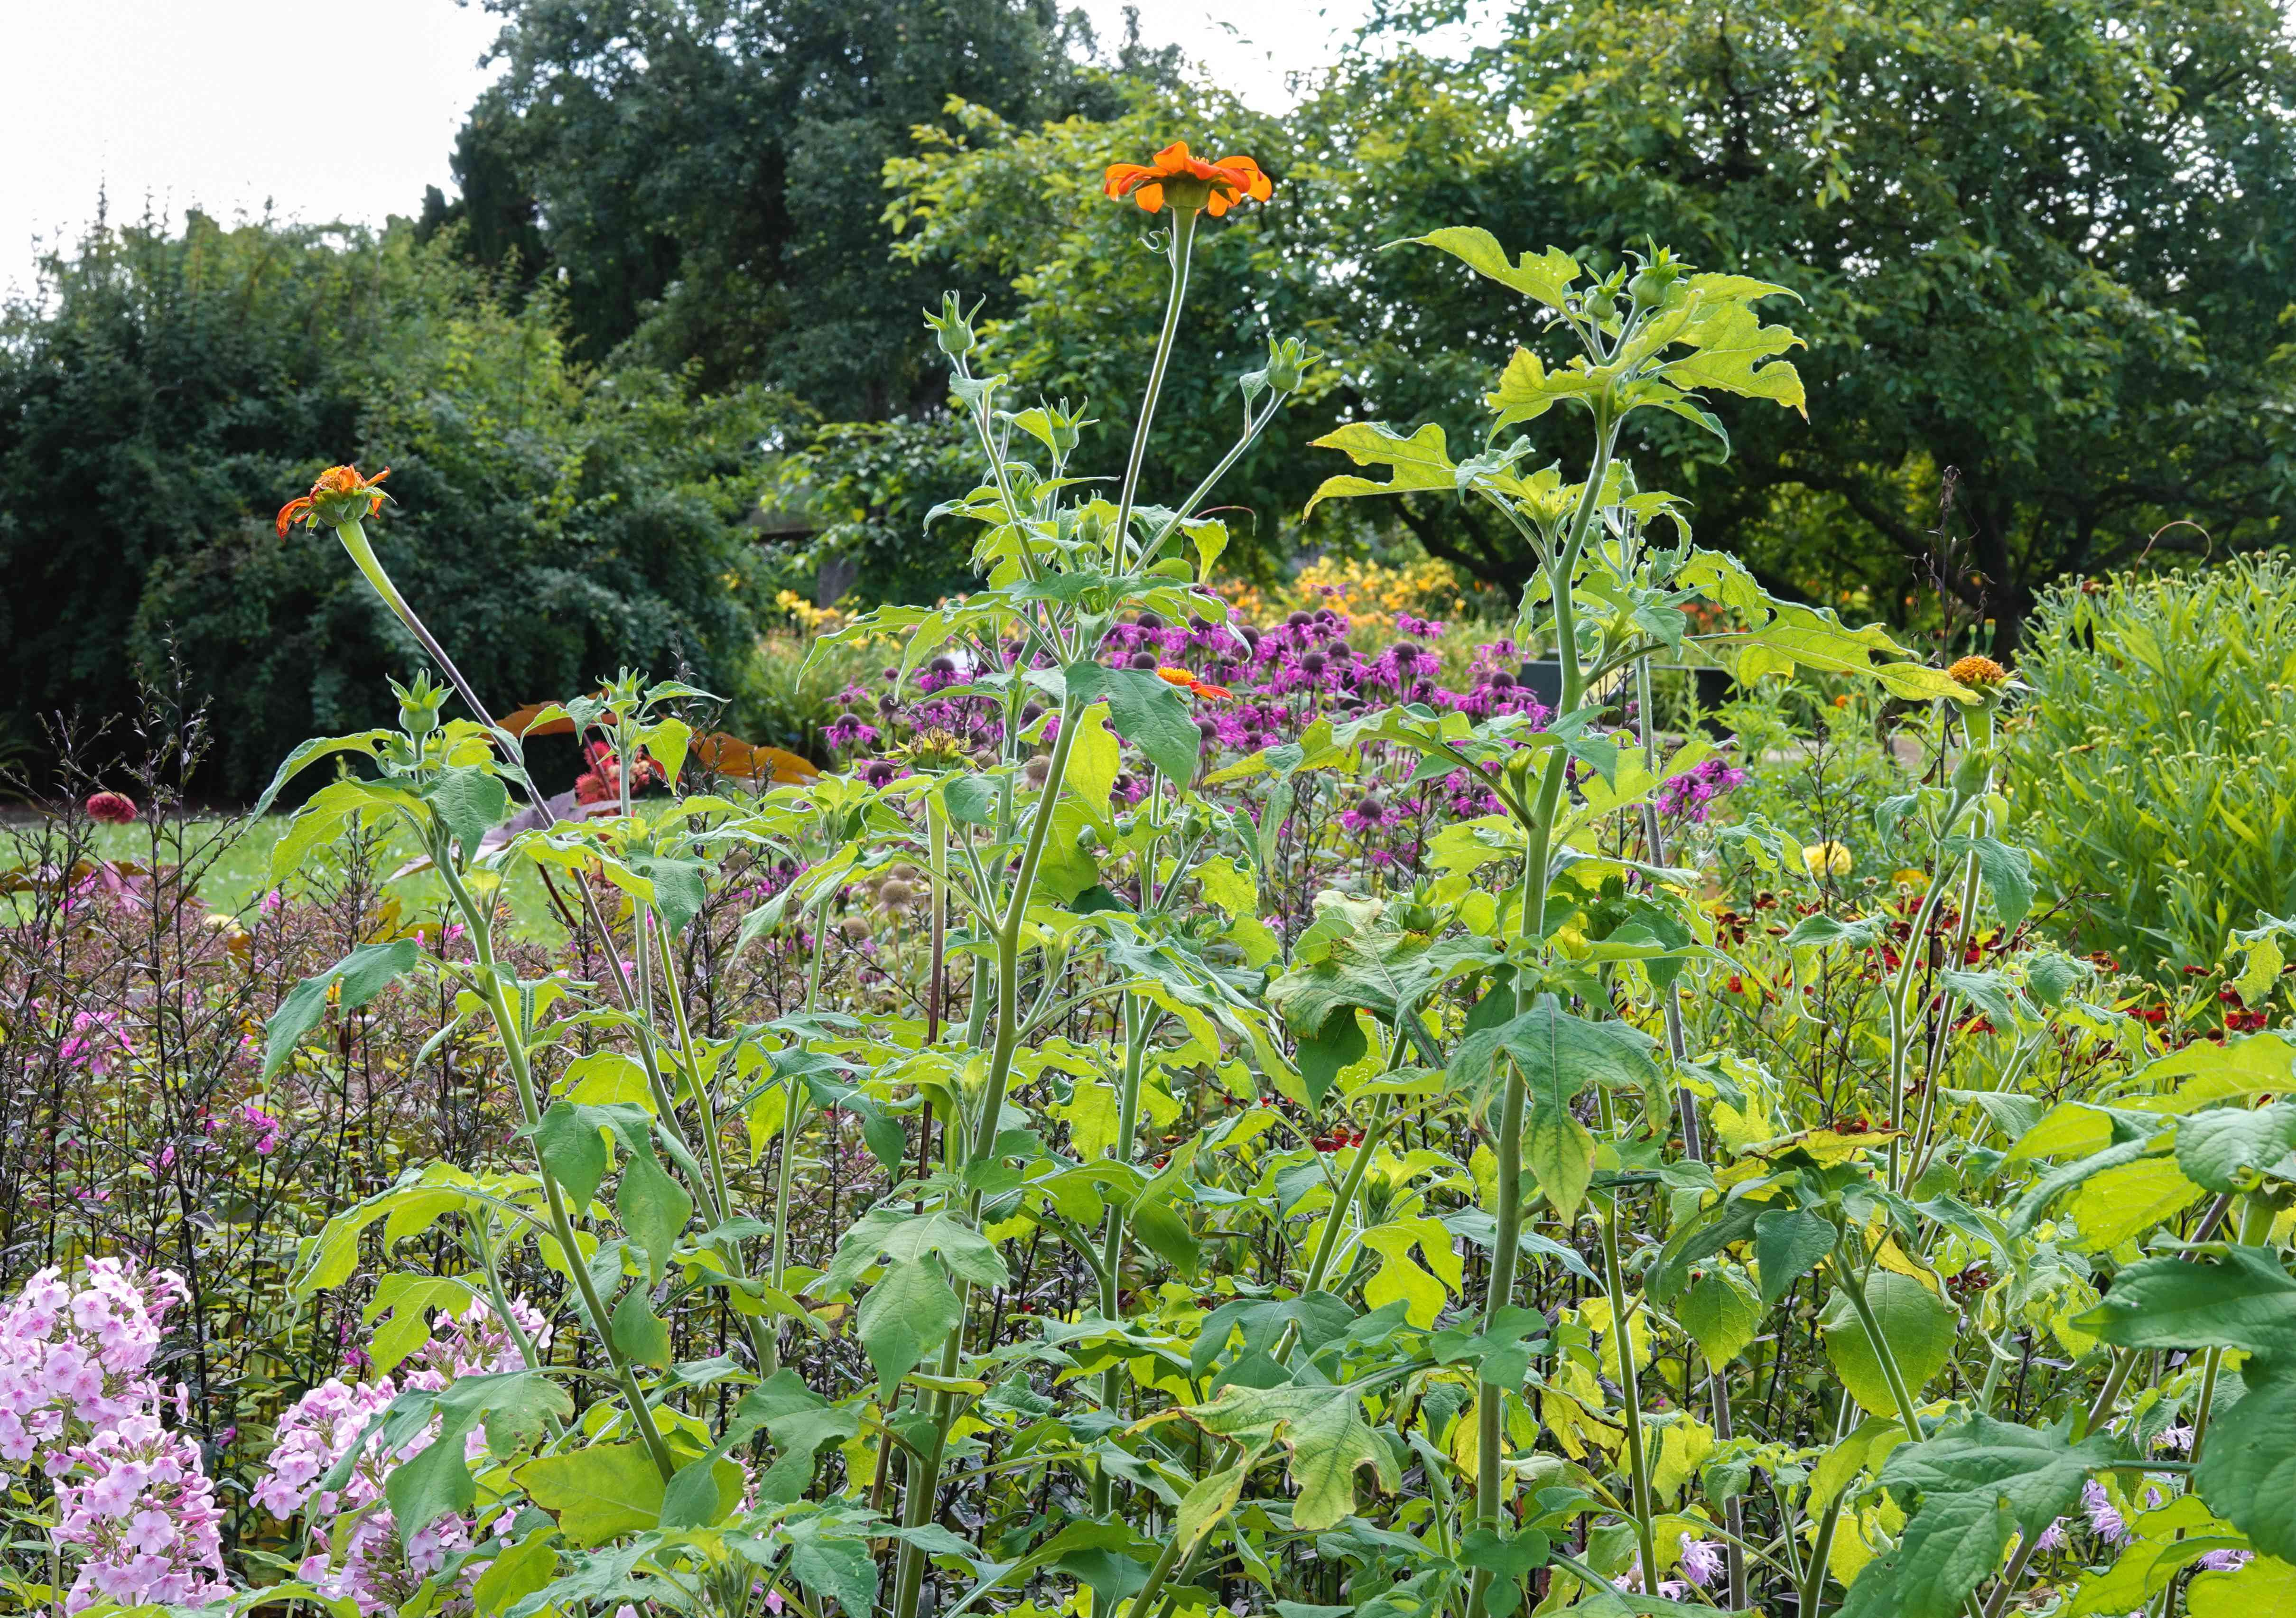 Mexican sunflower plant with tall thin stems and orange flowers on top in garden